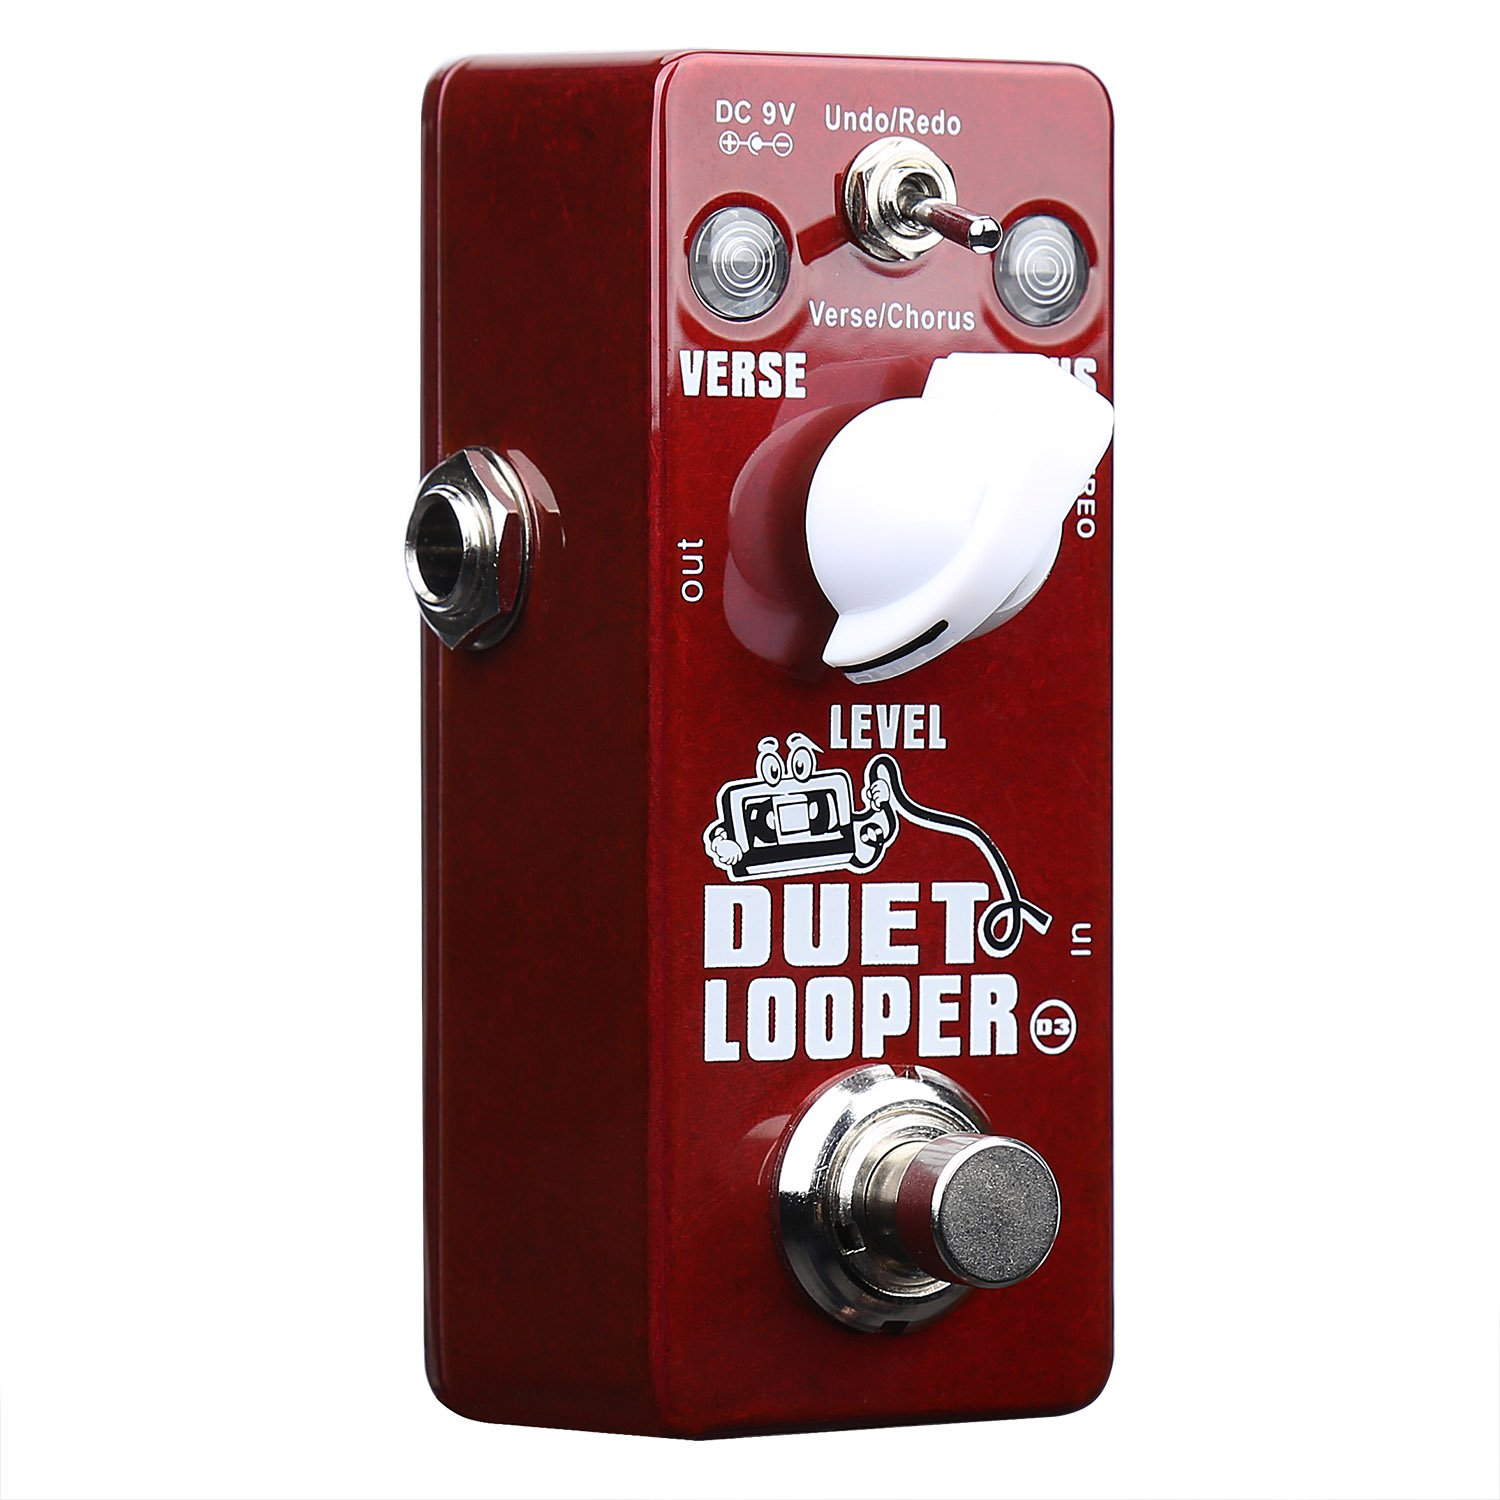 Xvive Duet Looper Stereo Dual Channel Loop Station Effects Pedal for Guitar Bass(Undo/Redo,Verse/Chorus)D3